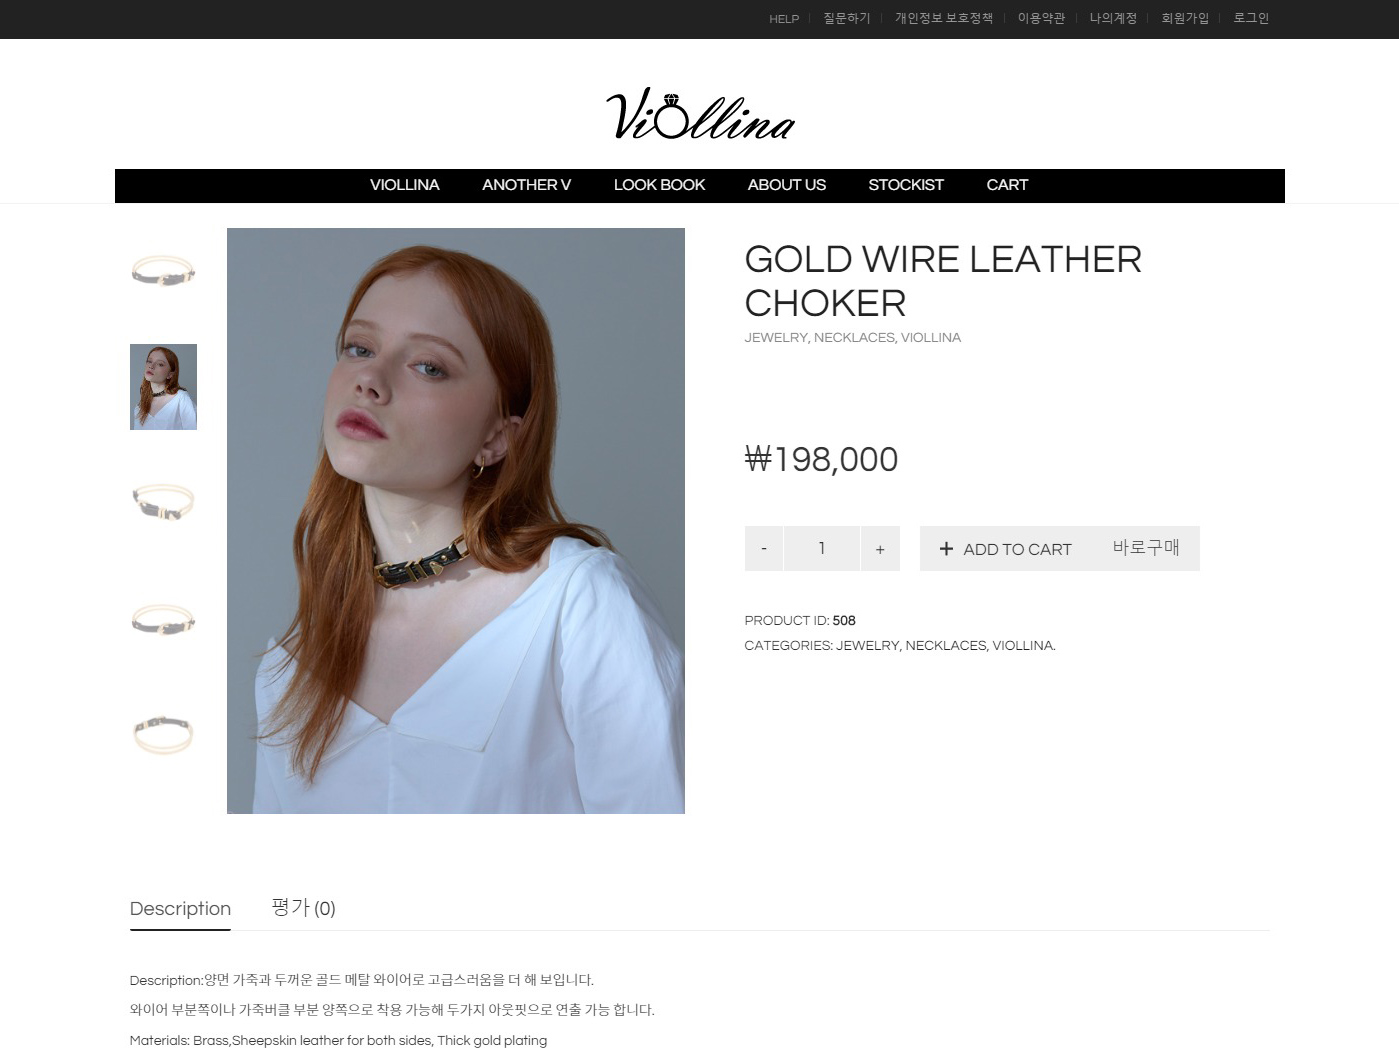 gold-wire-leather-choker-viollina